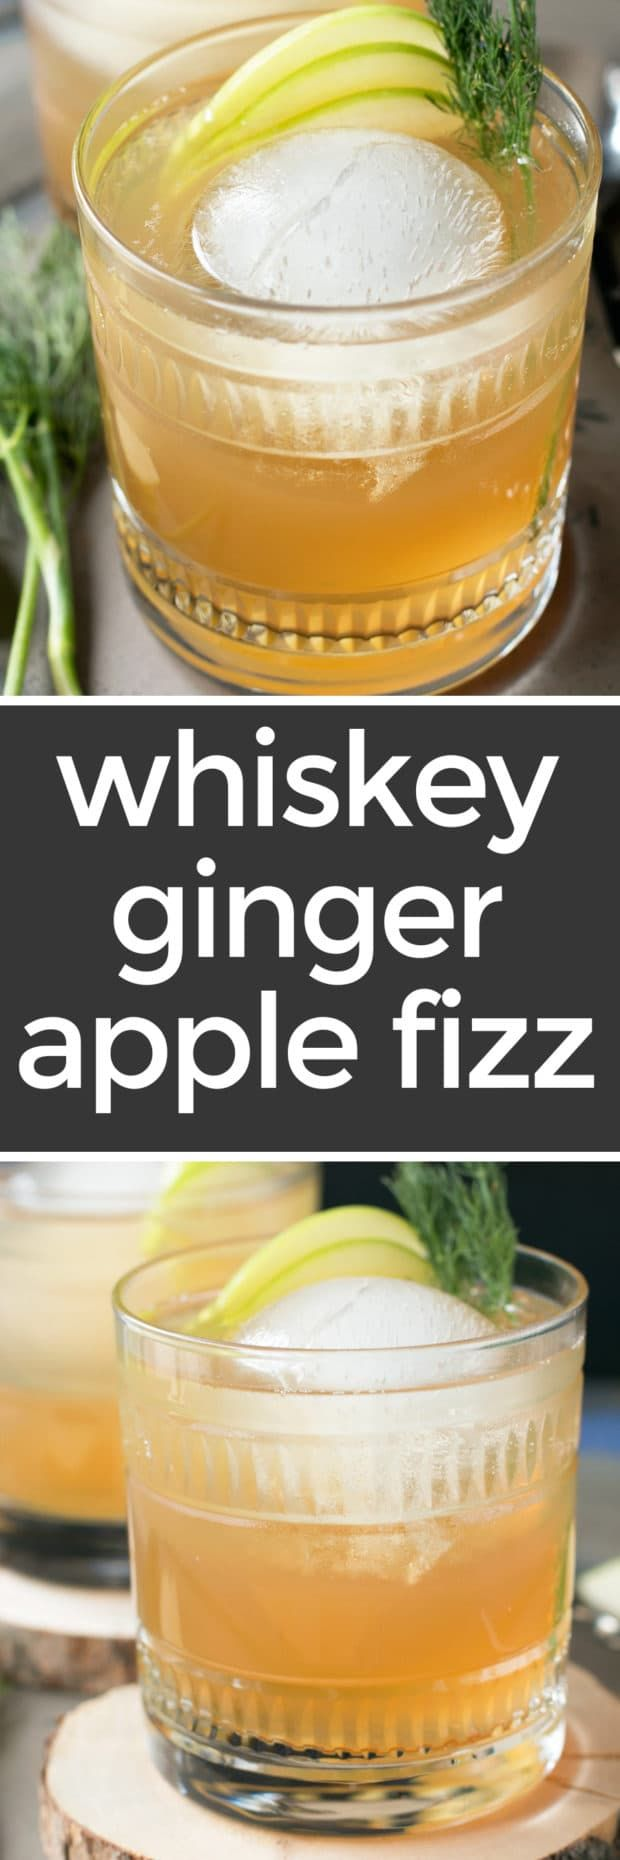 Craving a cocktail with a little extra depth this week? A Whiskey Apple Ginger Fizz always does the trick! The smooth and tart combination of whiskey, apple juice and ginger beer will tickle your taste buds, but it's the surprise ingredient of dill that'll have everyone begging for a second round. Whiskey Apple Ginger Fizz | cakenknife.com #cocktail #happyhour